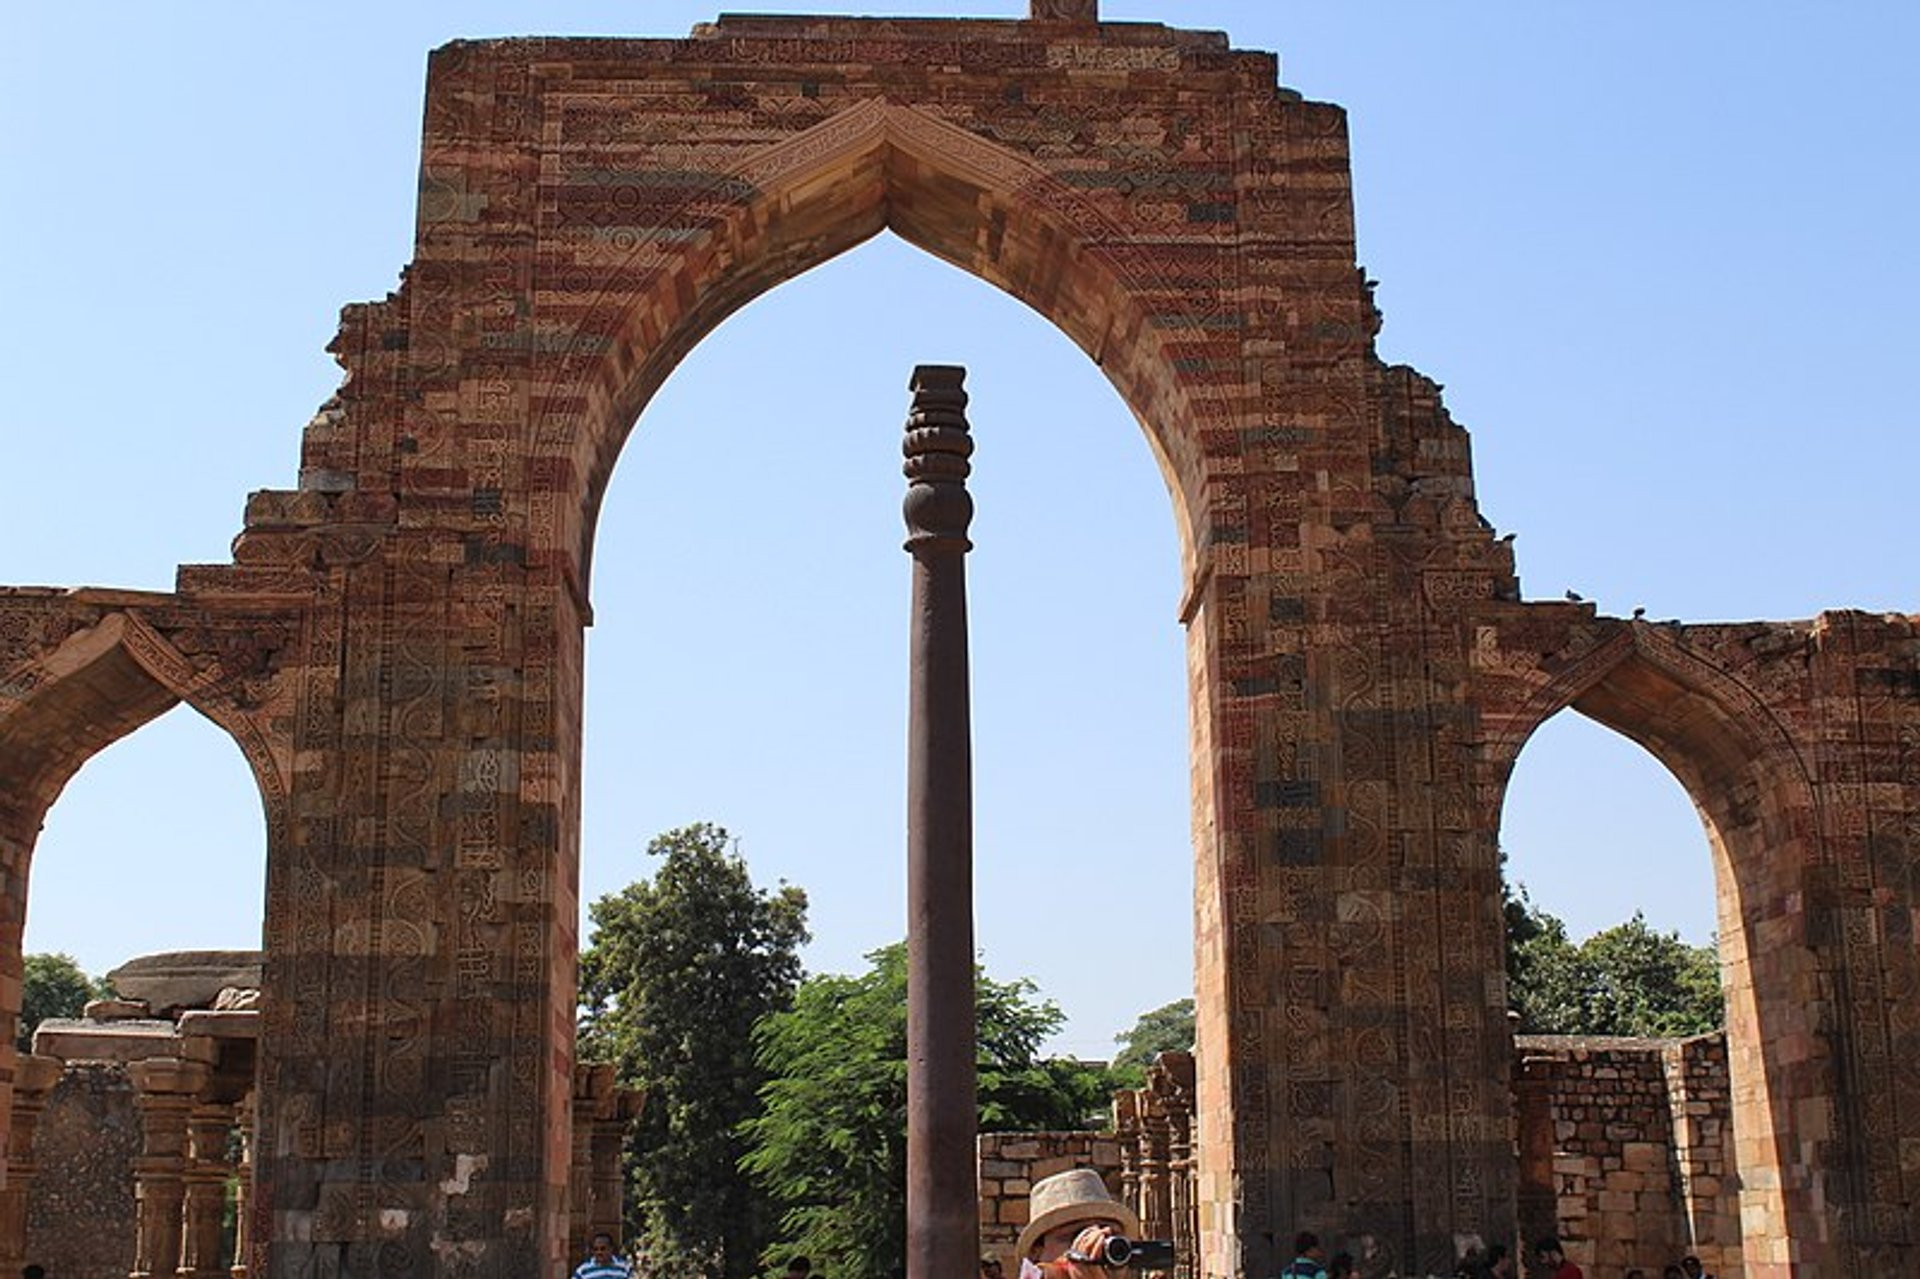 Iron Pillar of Delhi in India 2020 - Best Time